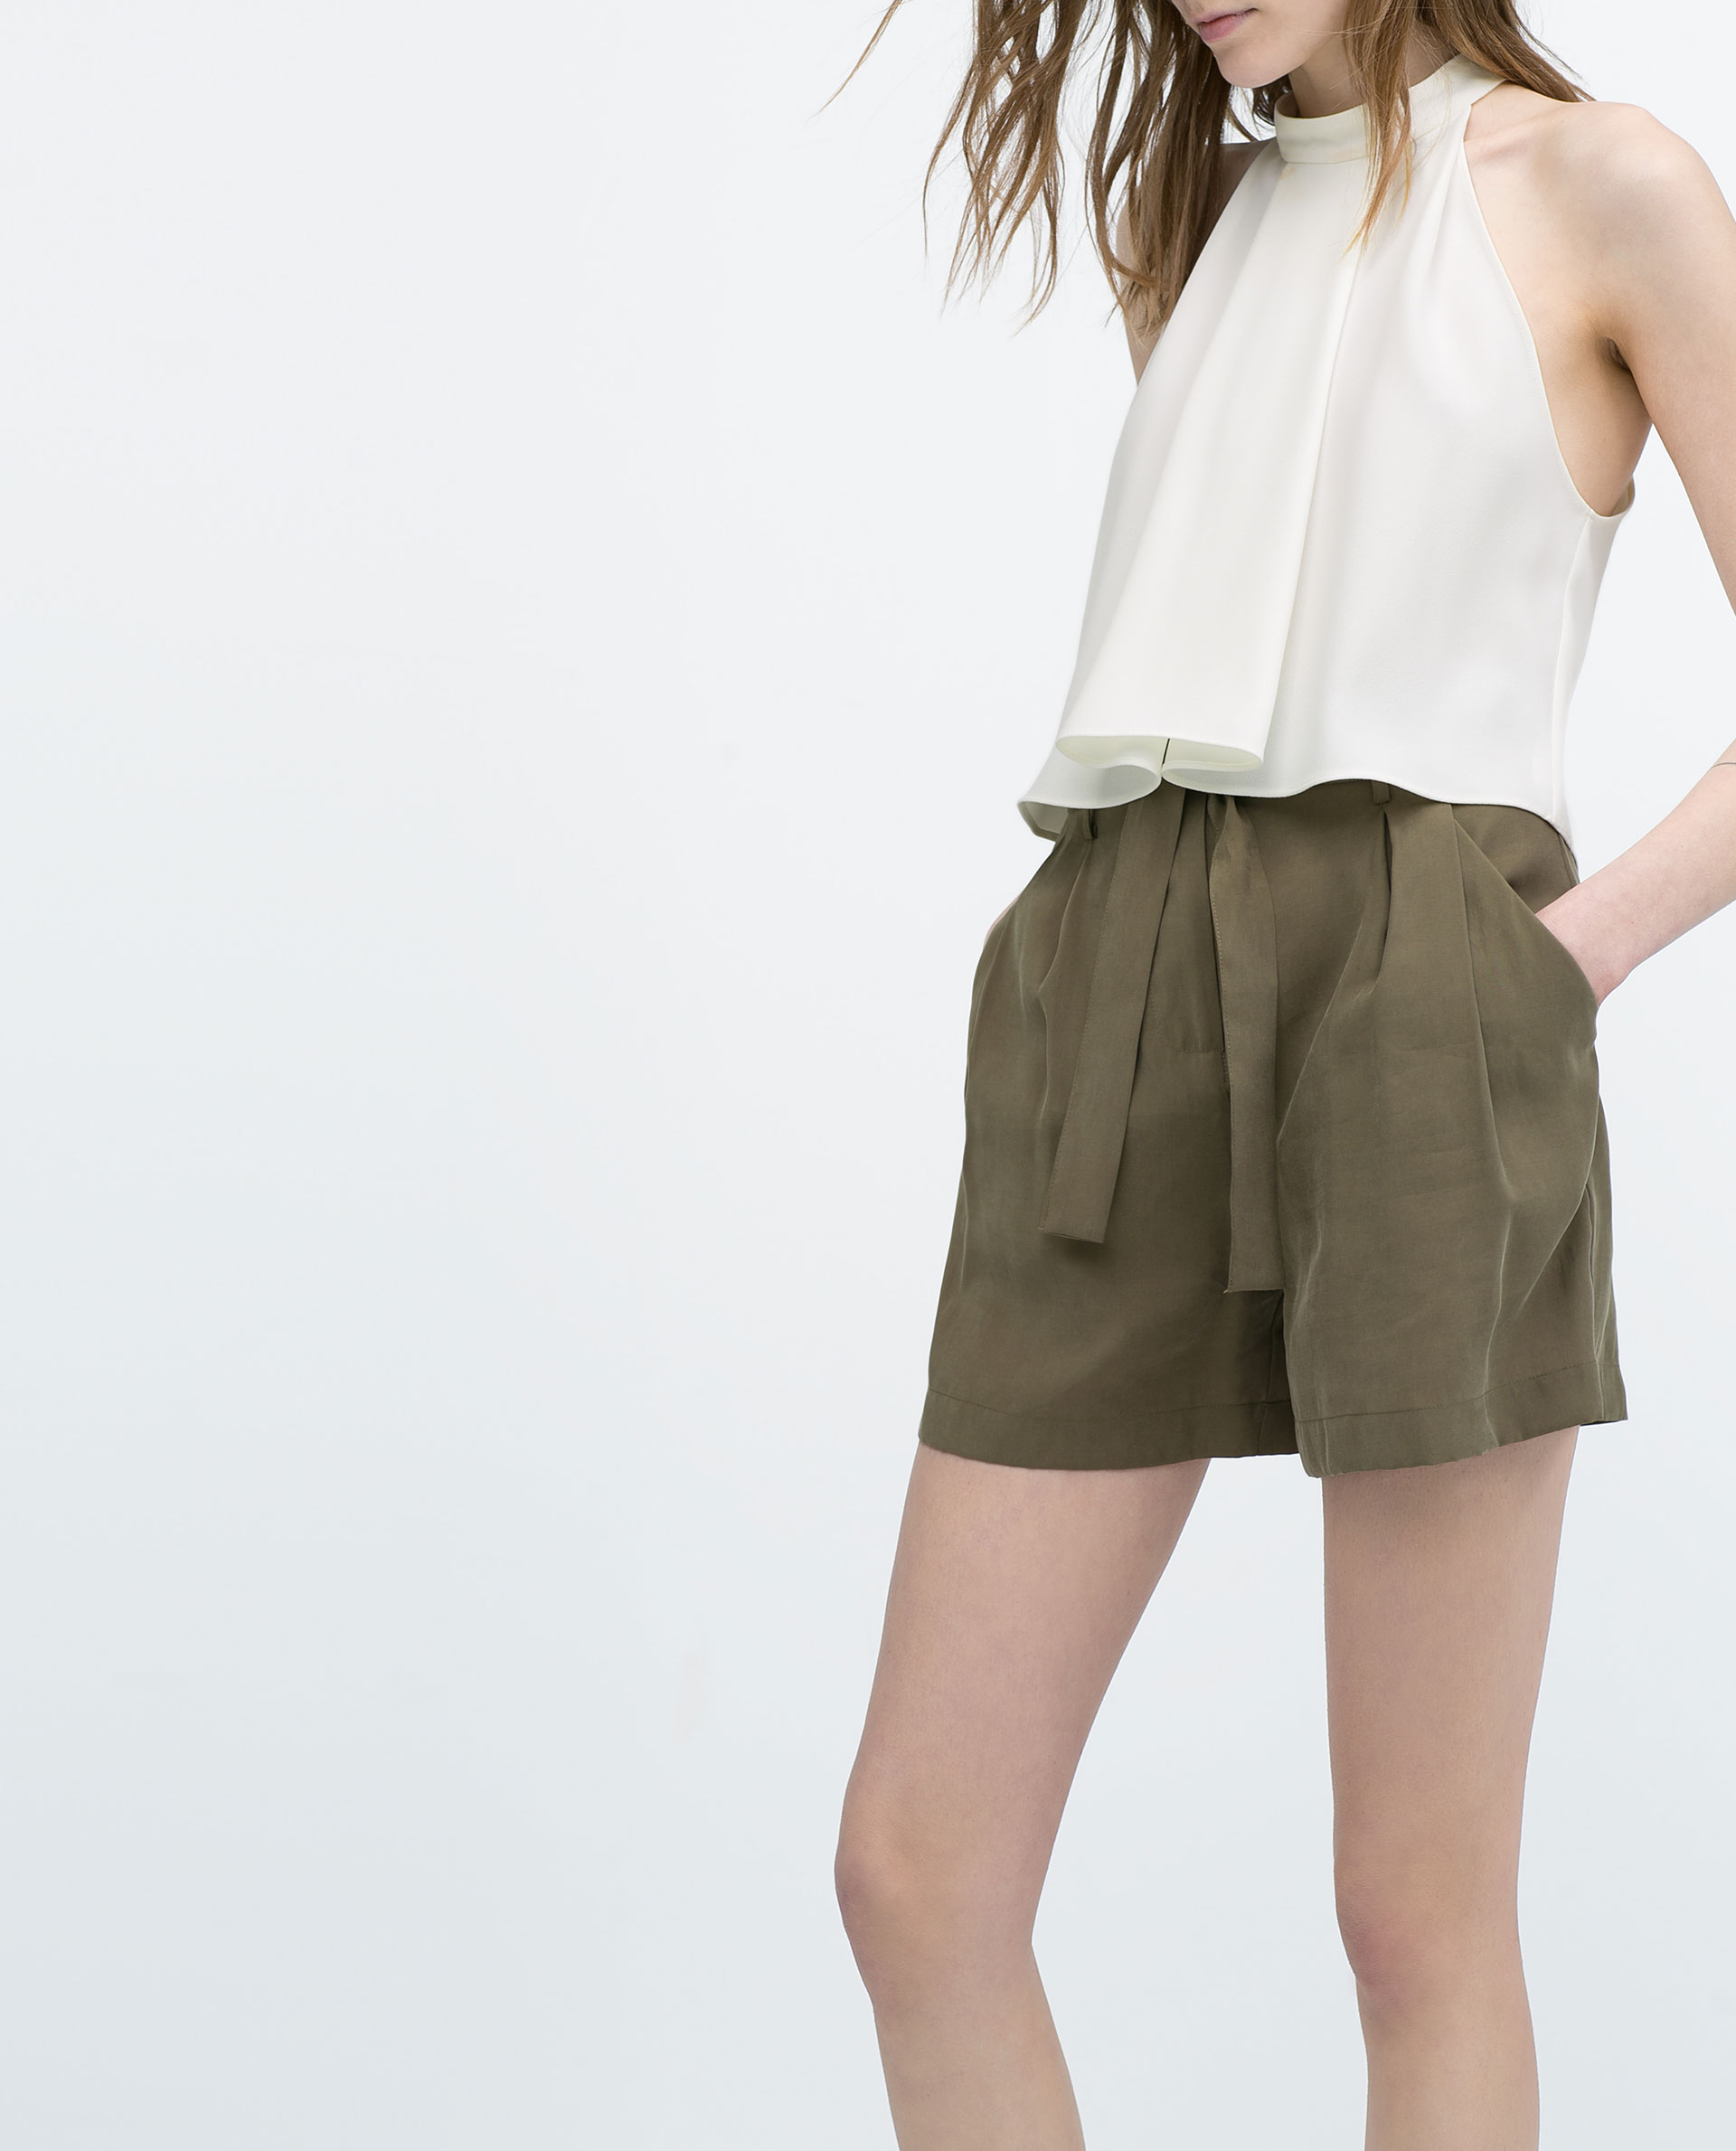 Zara High-Waisted Shorts With Belt in Natural | Lyst